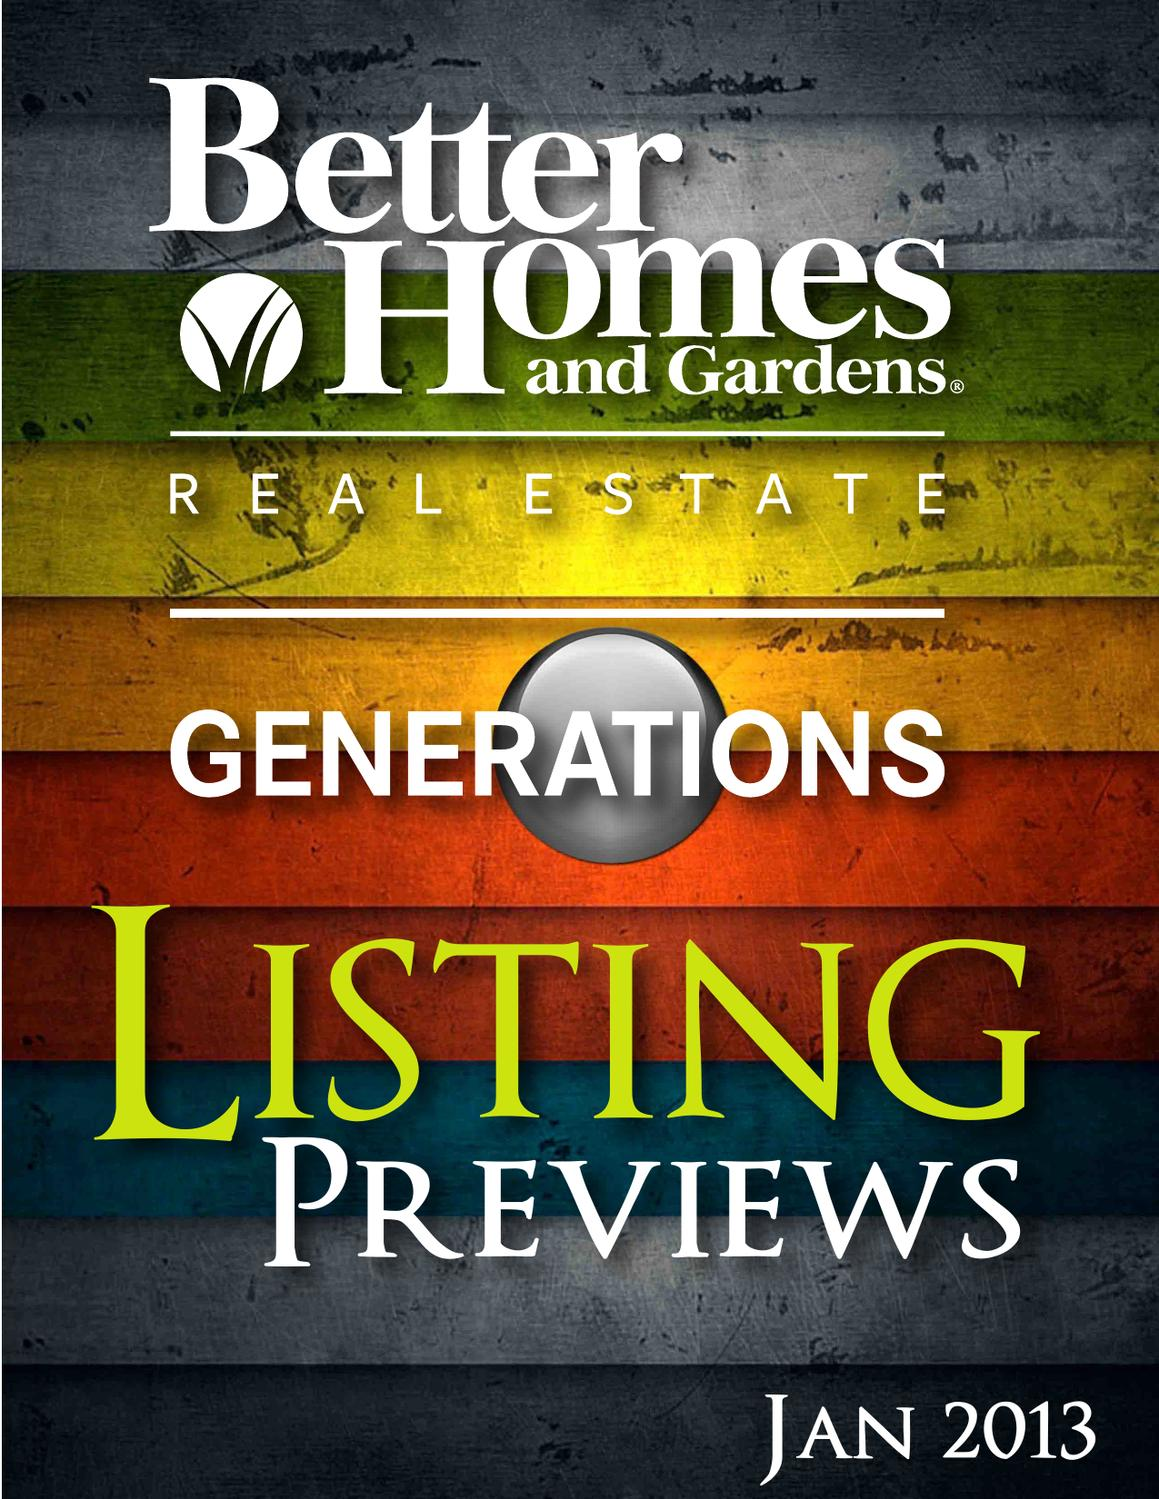 Listing Previews Jan2013 By Better Homes And Gardens Real Estate Issuu